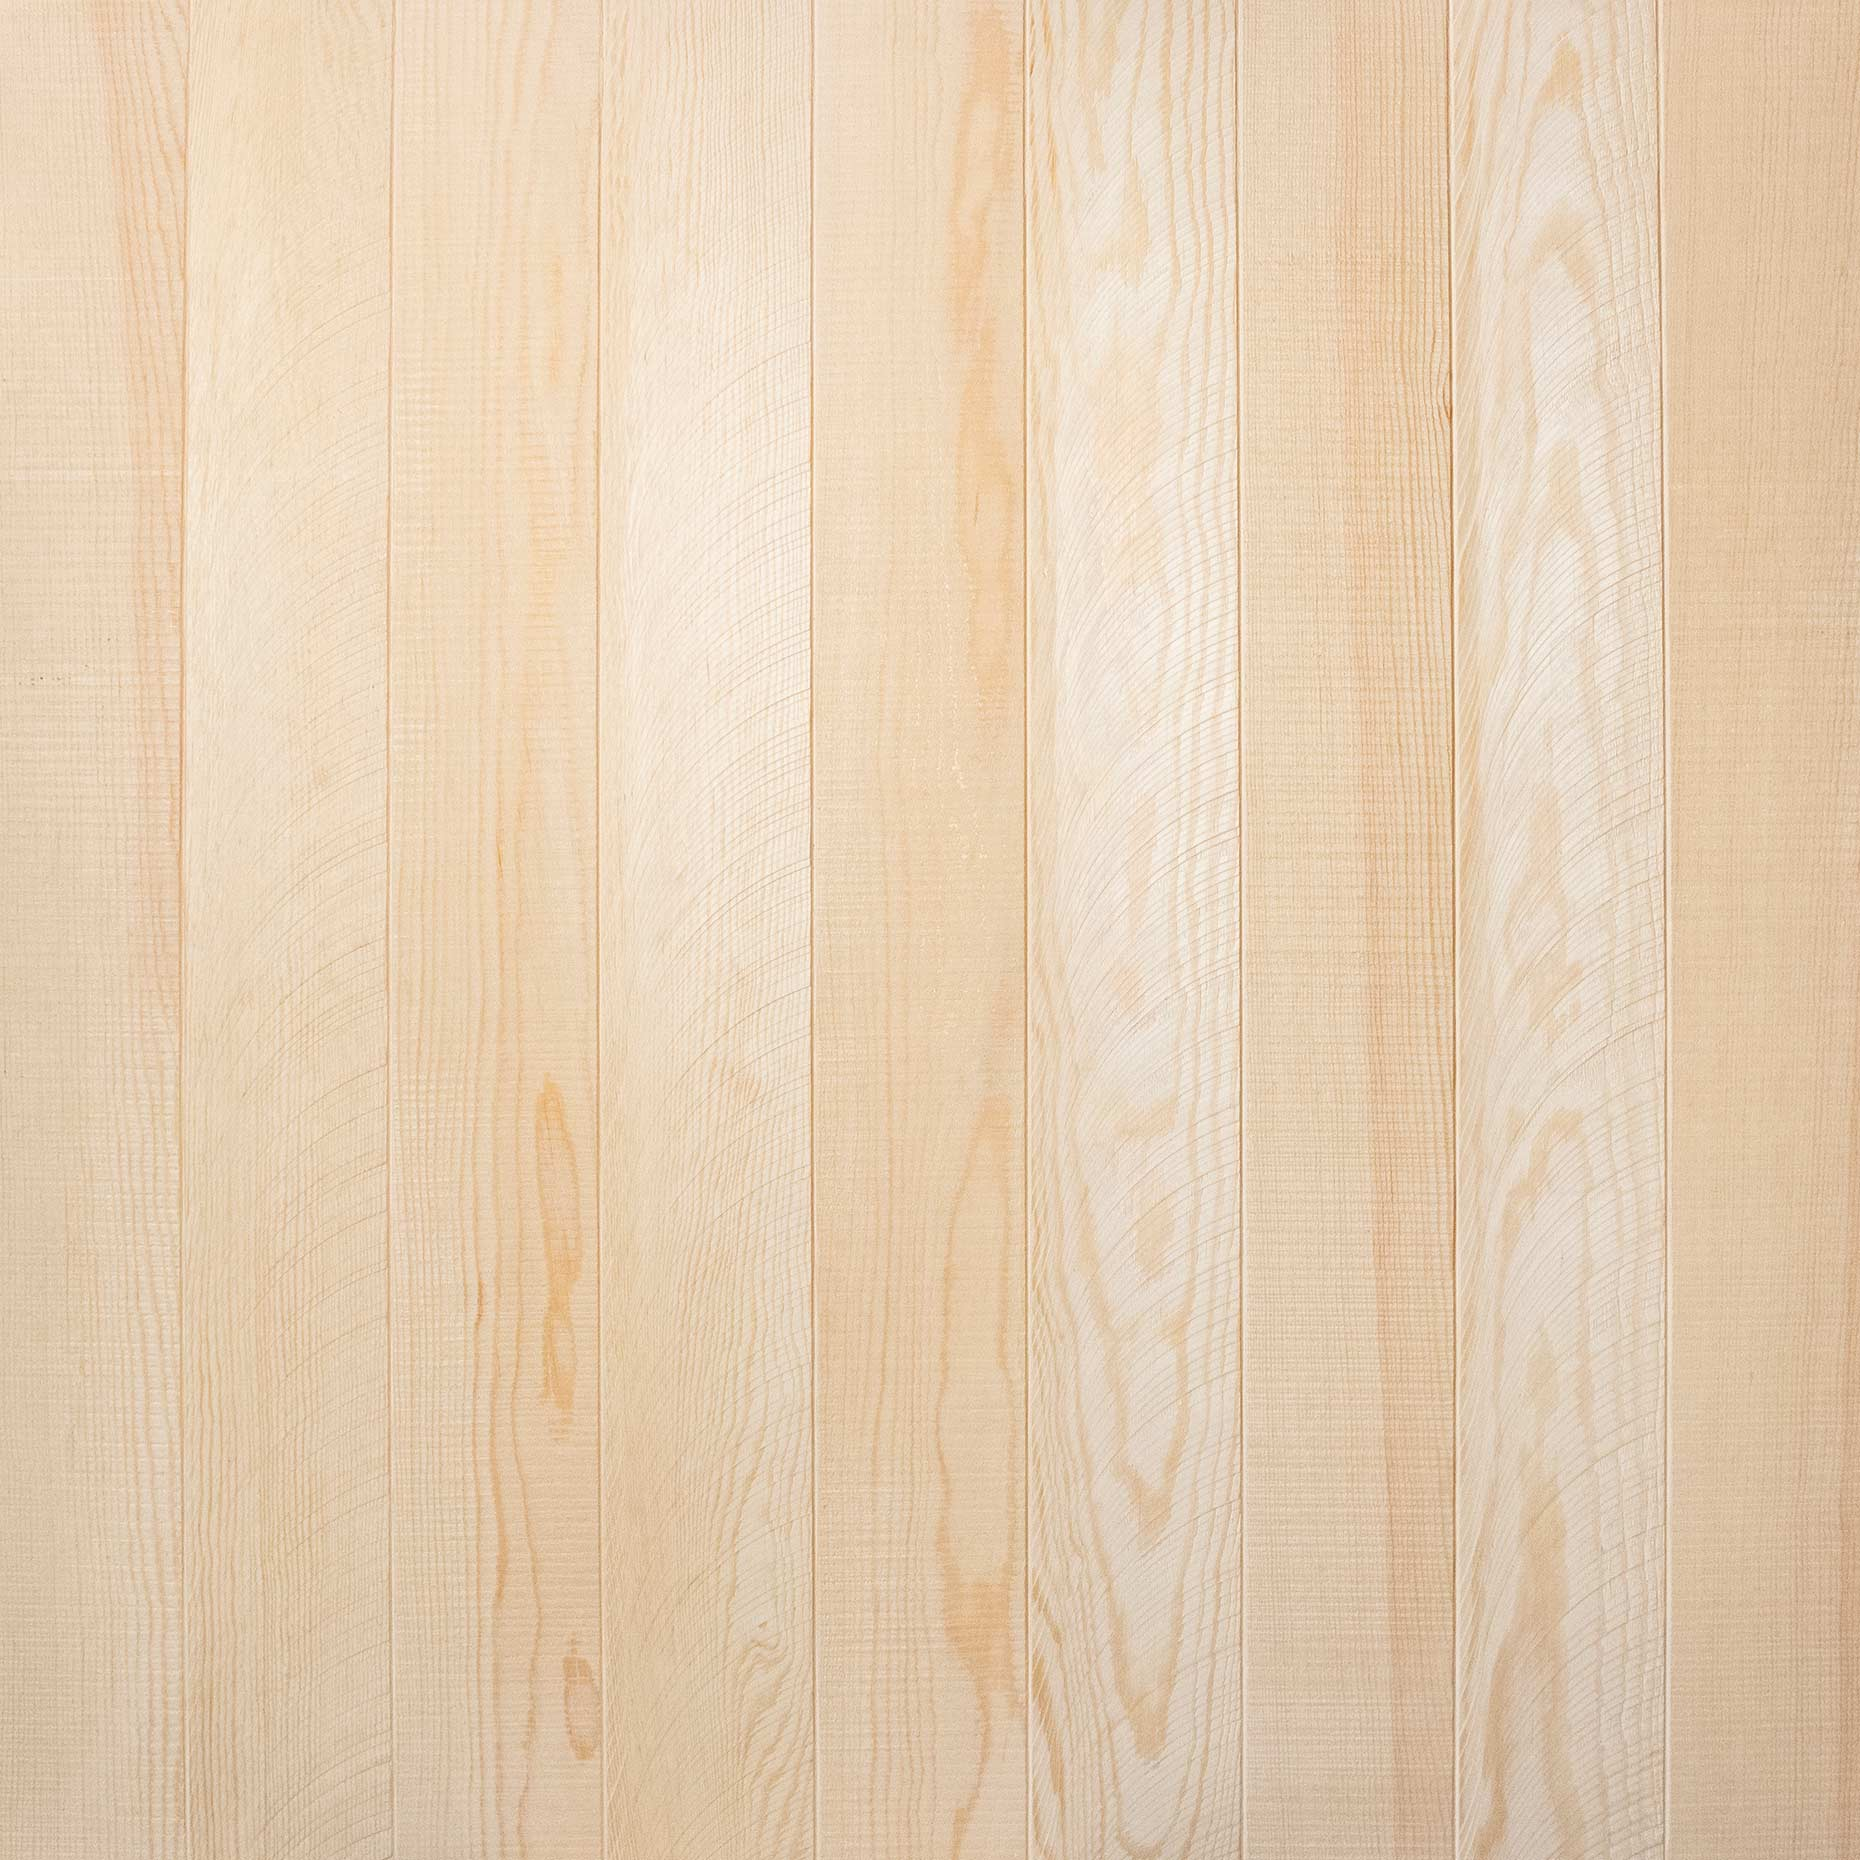 bare pine planks roughened wood background